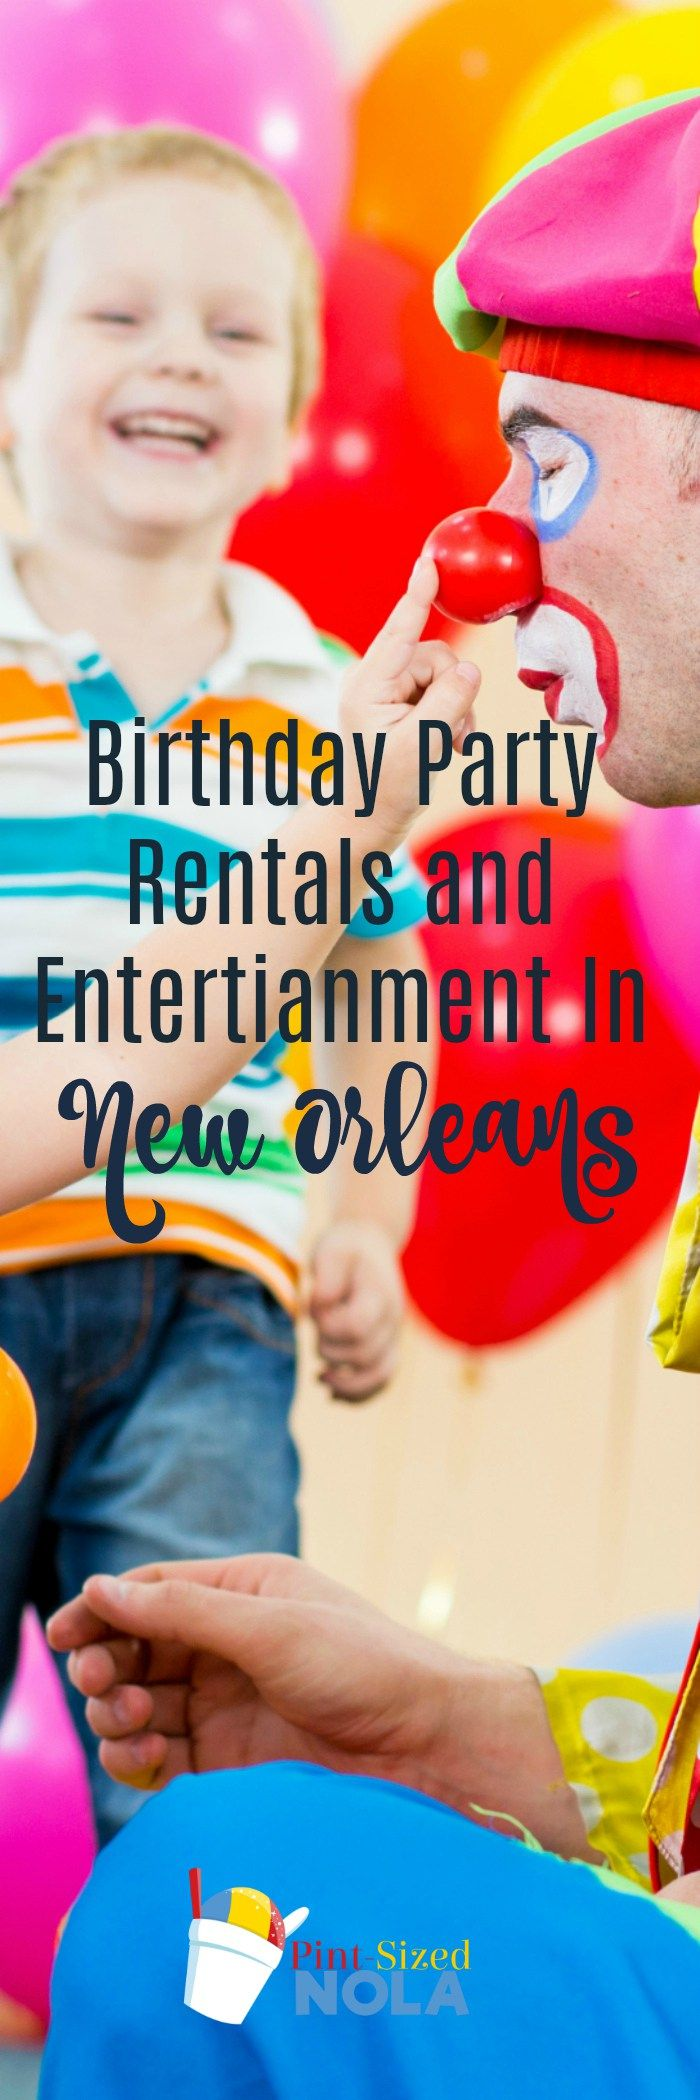 Birthday Party Rentals and Entertainment in New Orleans